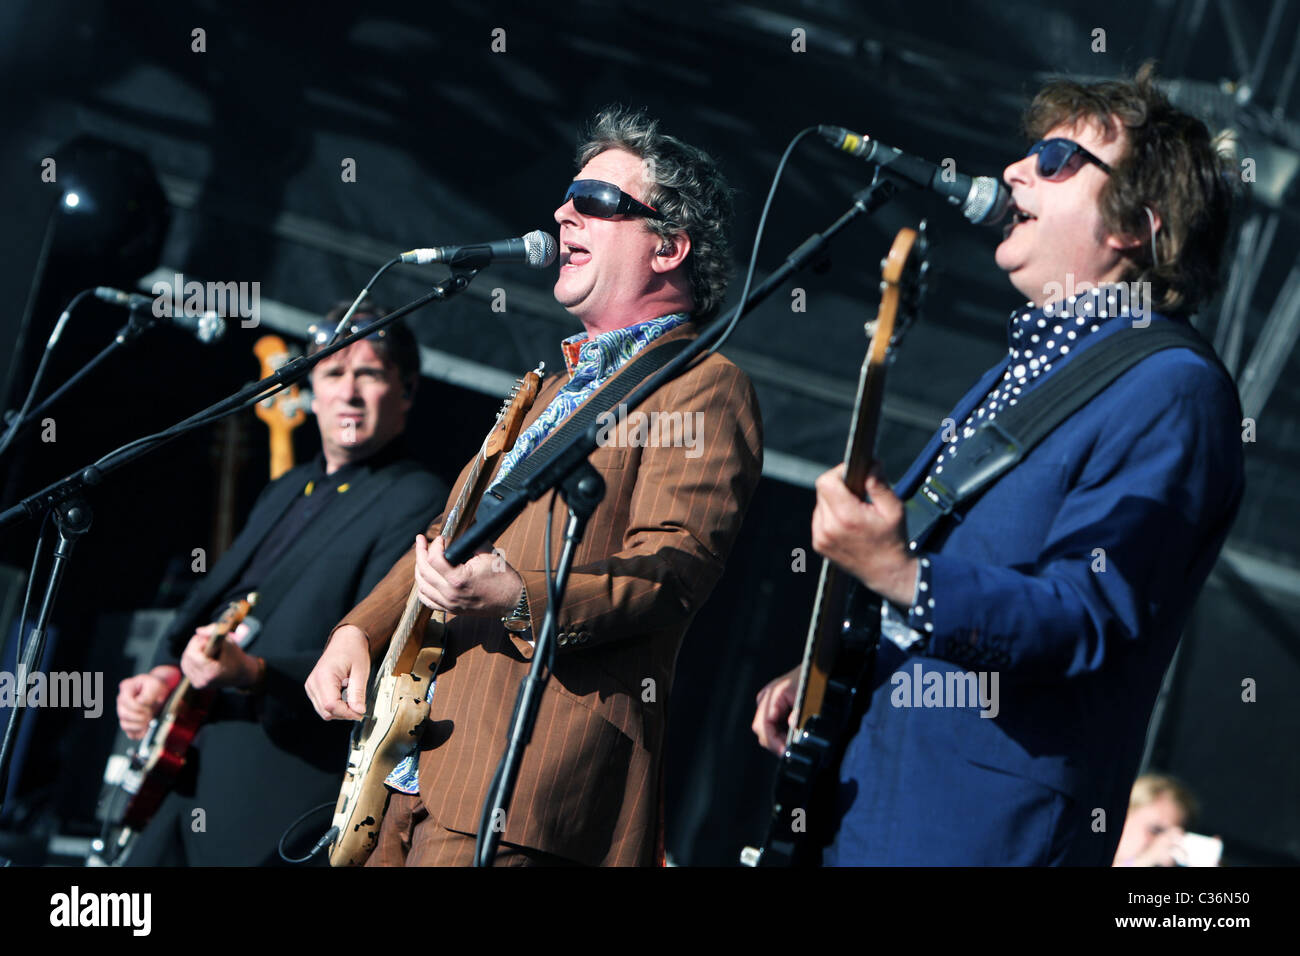 Pop Group Squeeze at Cornbury Festival in Oxfordshire 2009 Stock Photo